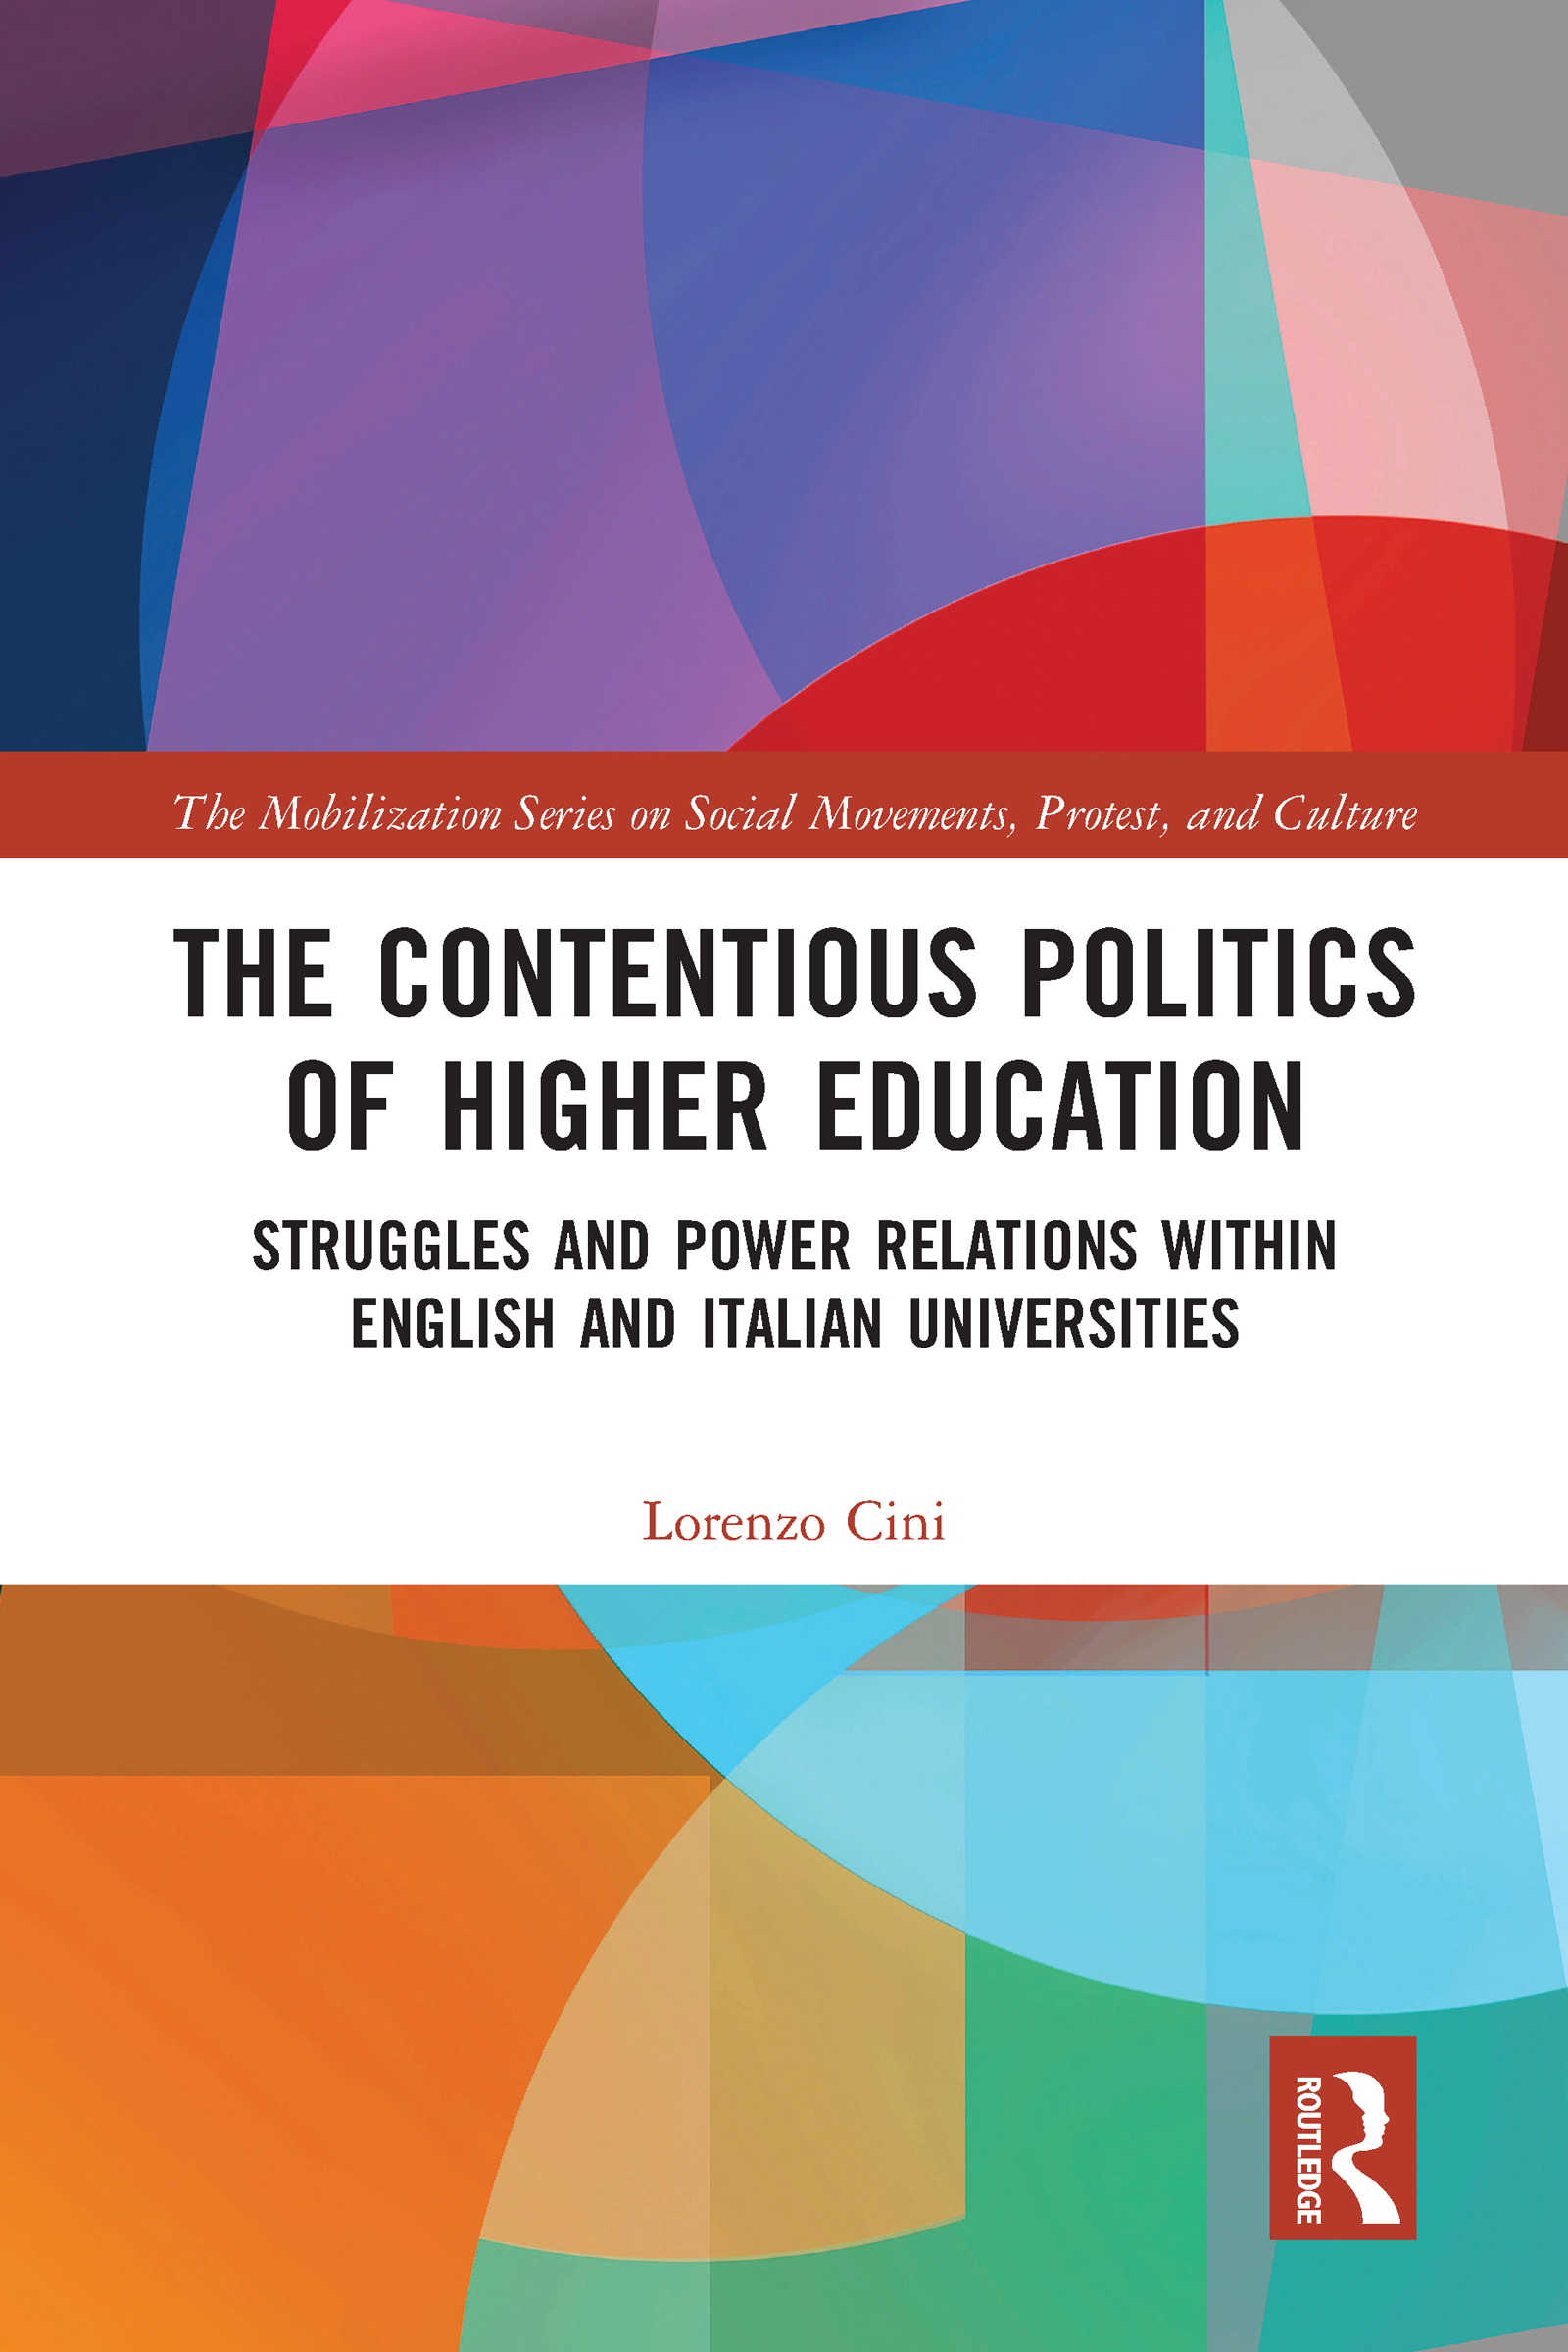 The Contentious Politics of Higher Education